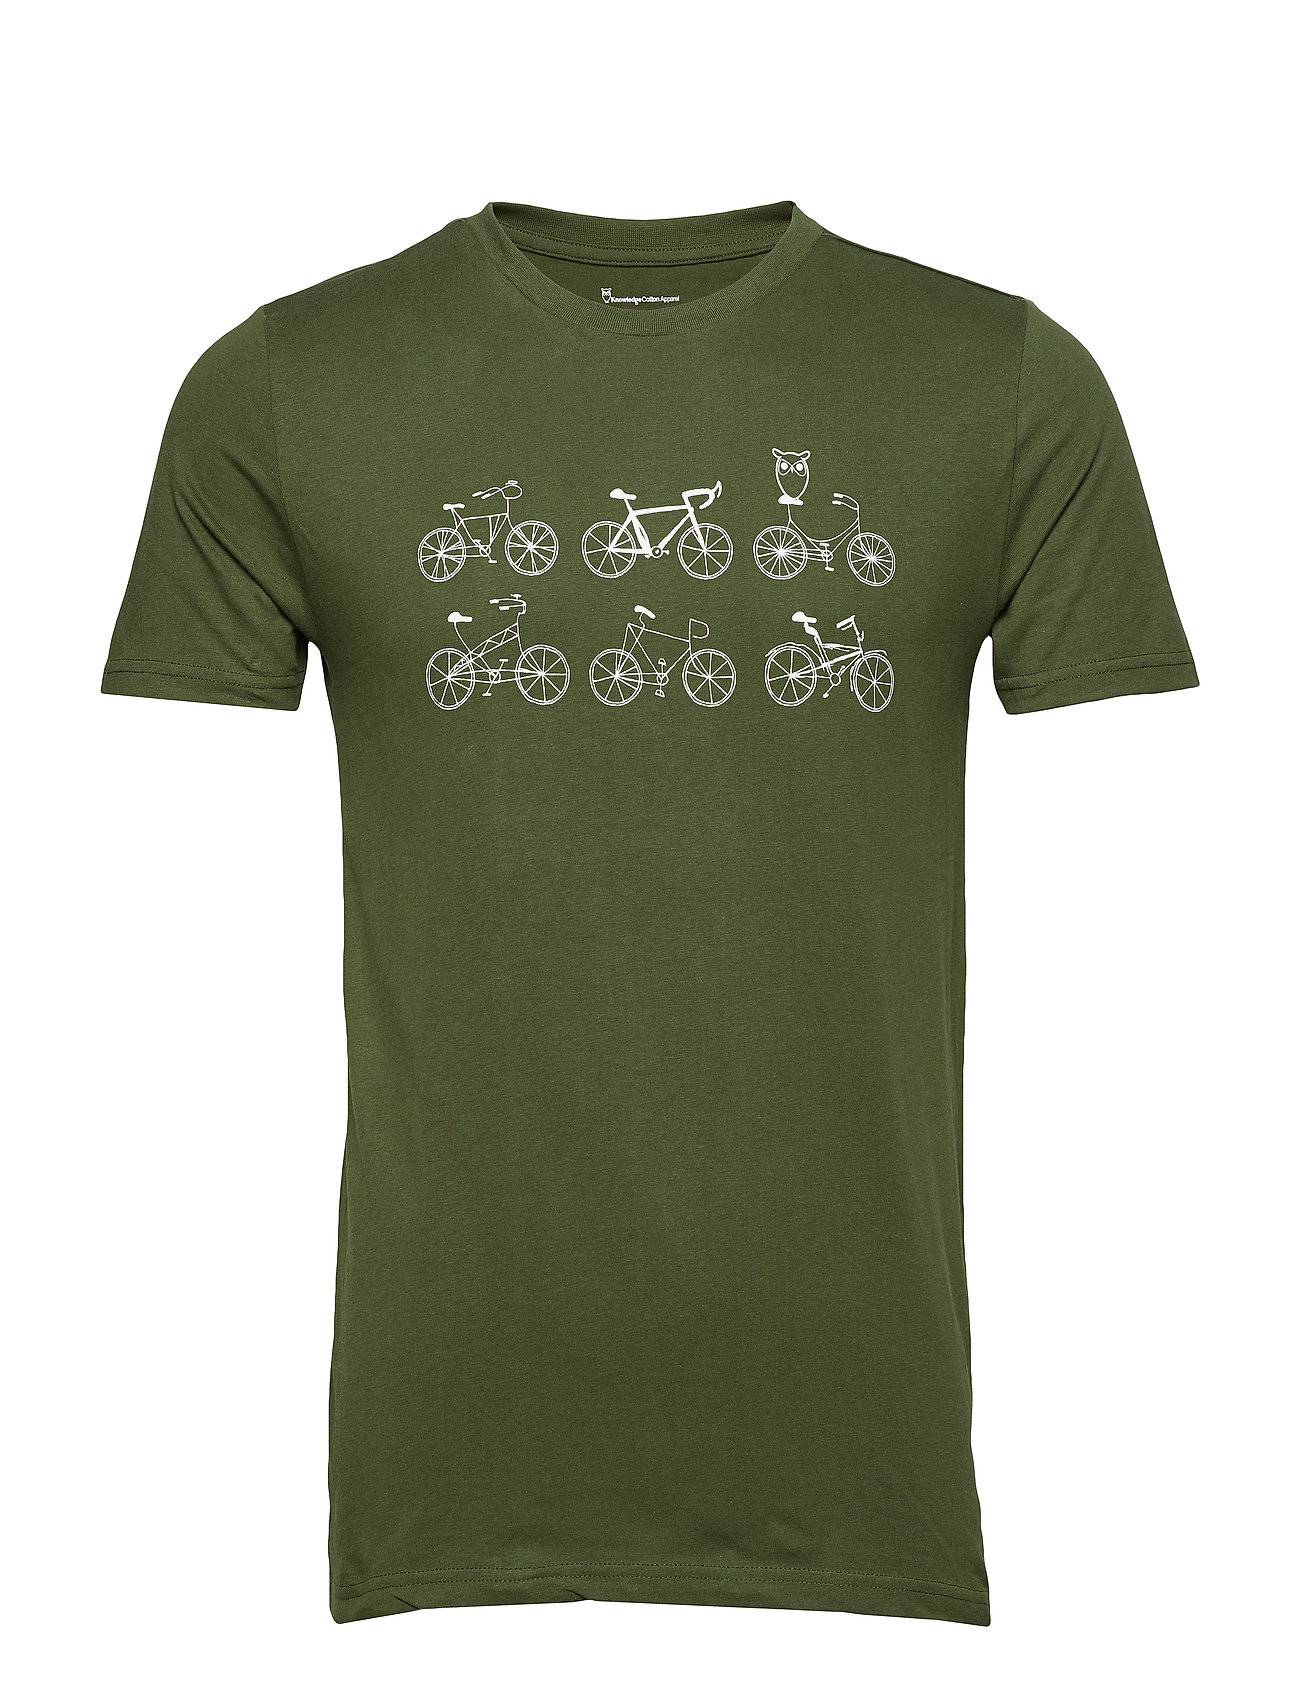 Knowledge Cotton Apparel T-Shirt With Printed Bikes On A Lin